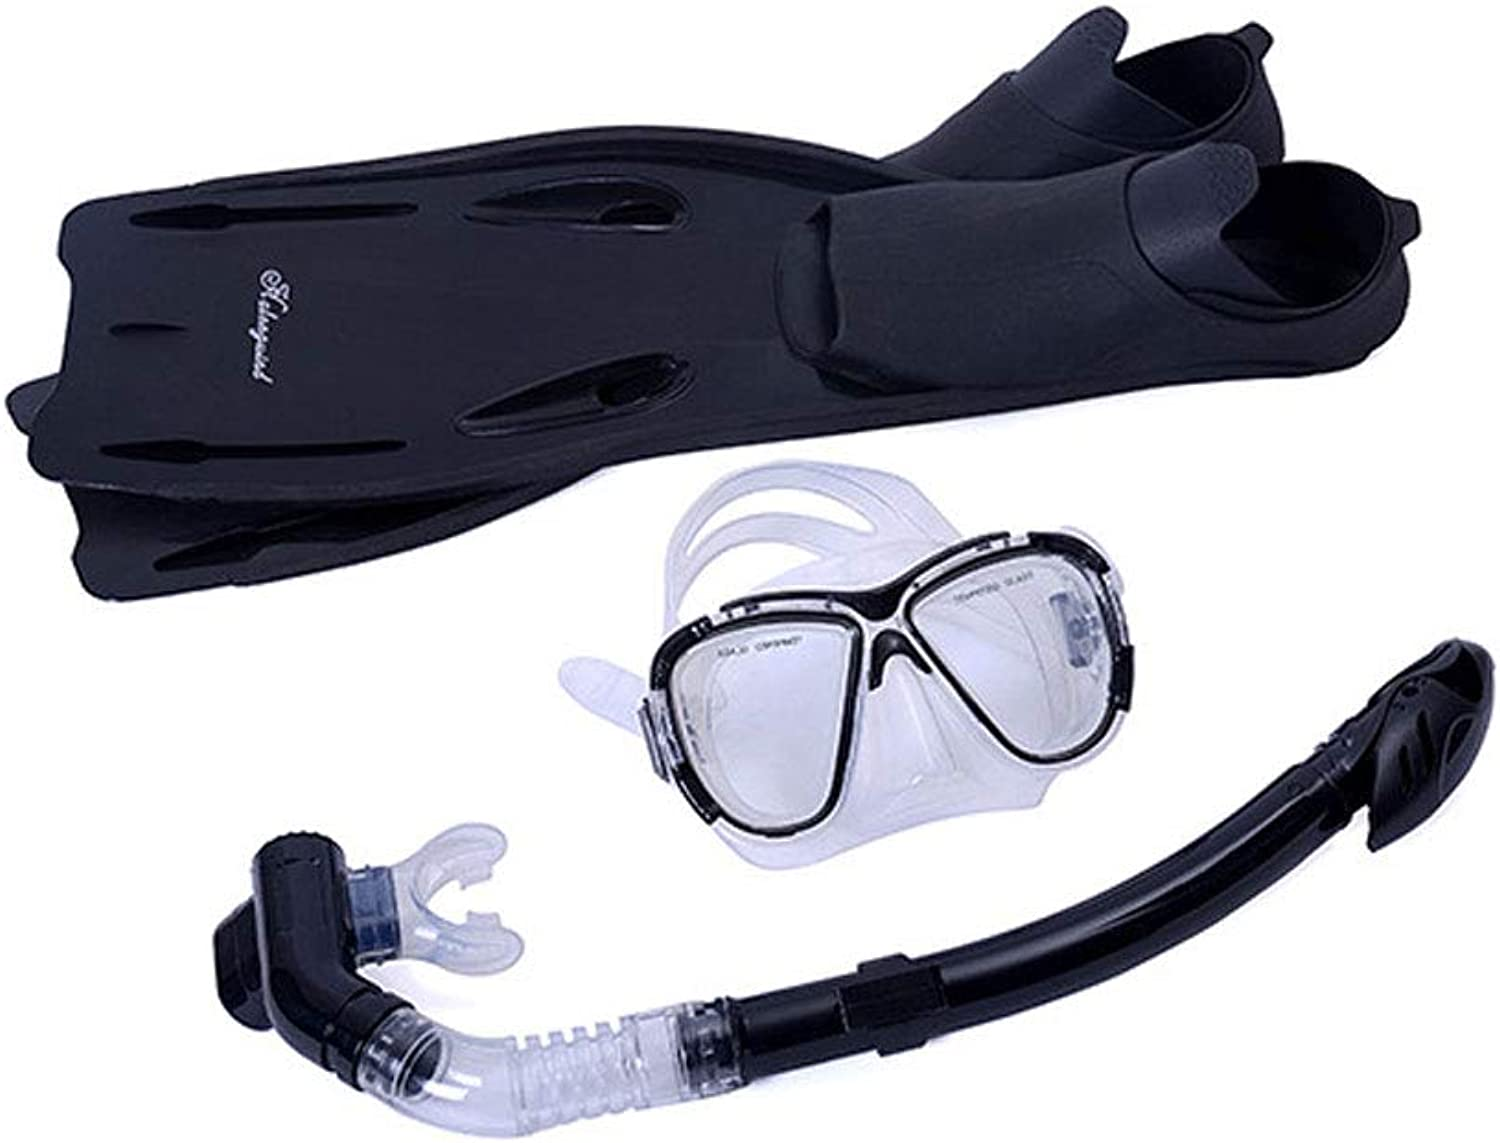 ZEGEGE Snorkeling Sambo PVC waterproof goggles Dry snorkels Foot and ankle equipment